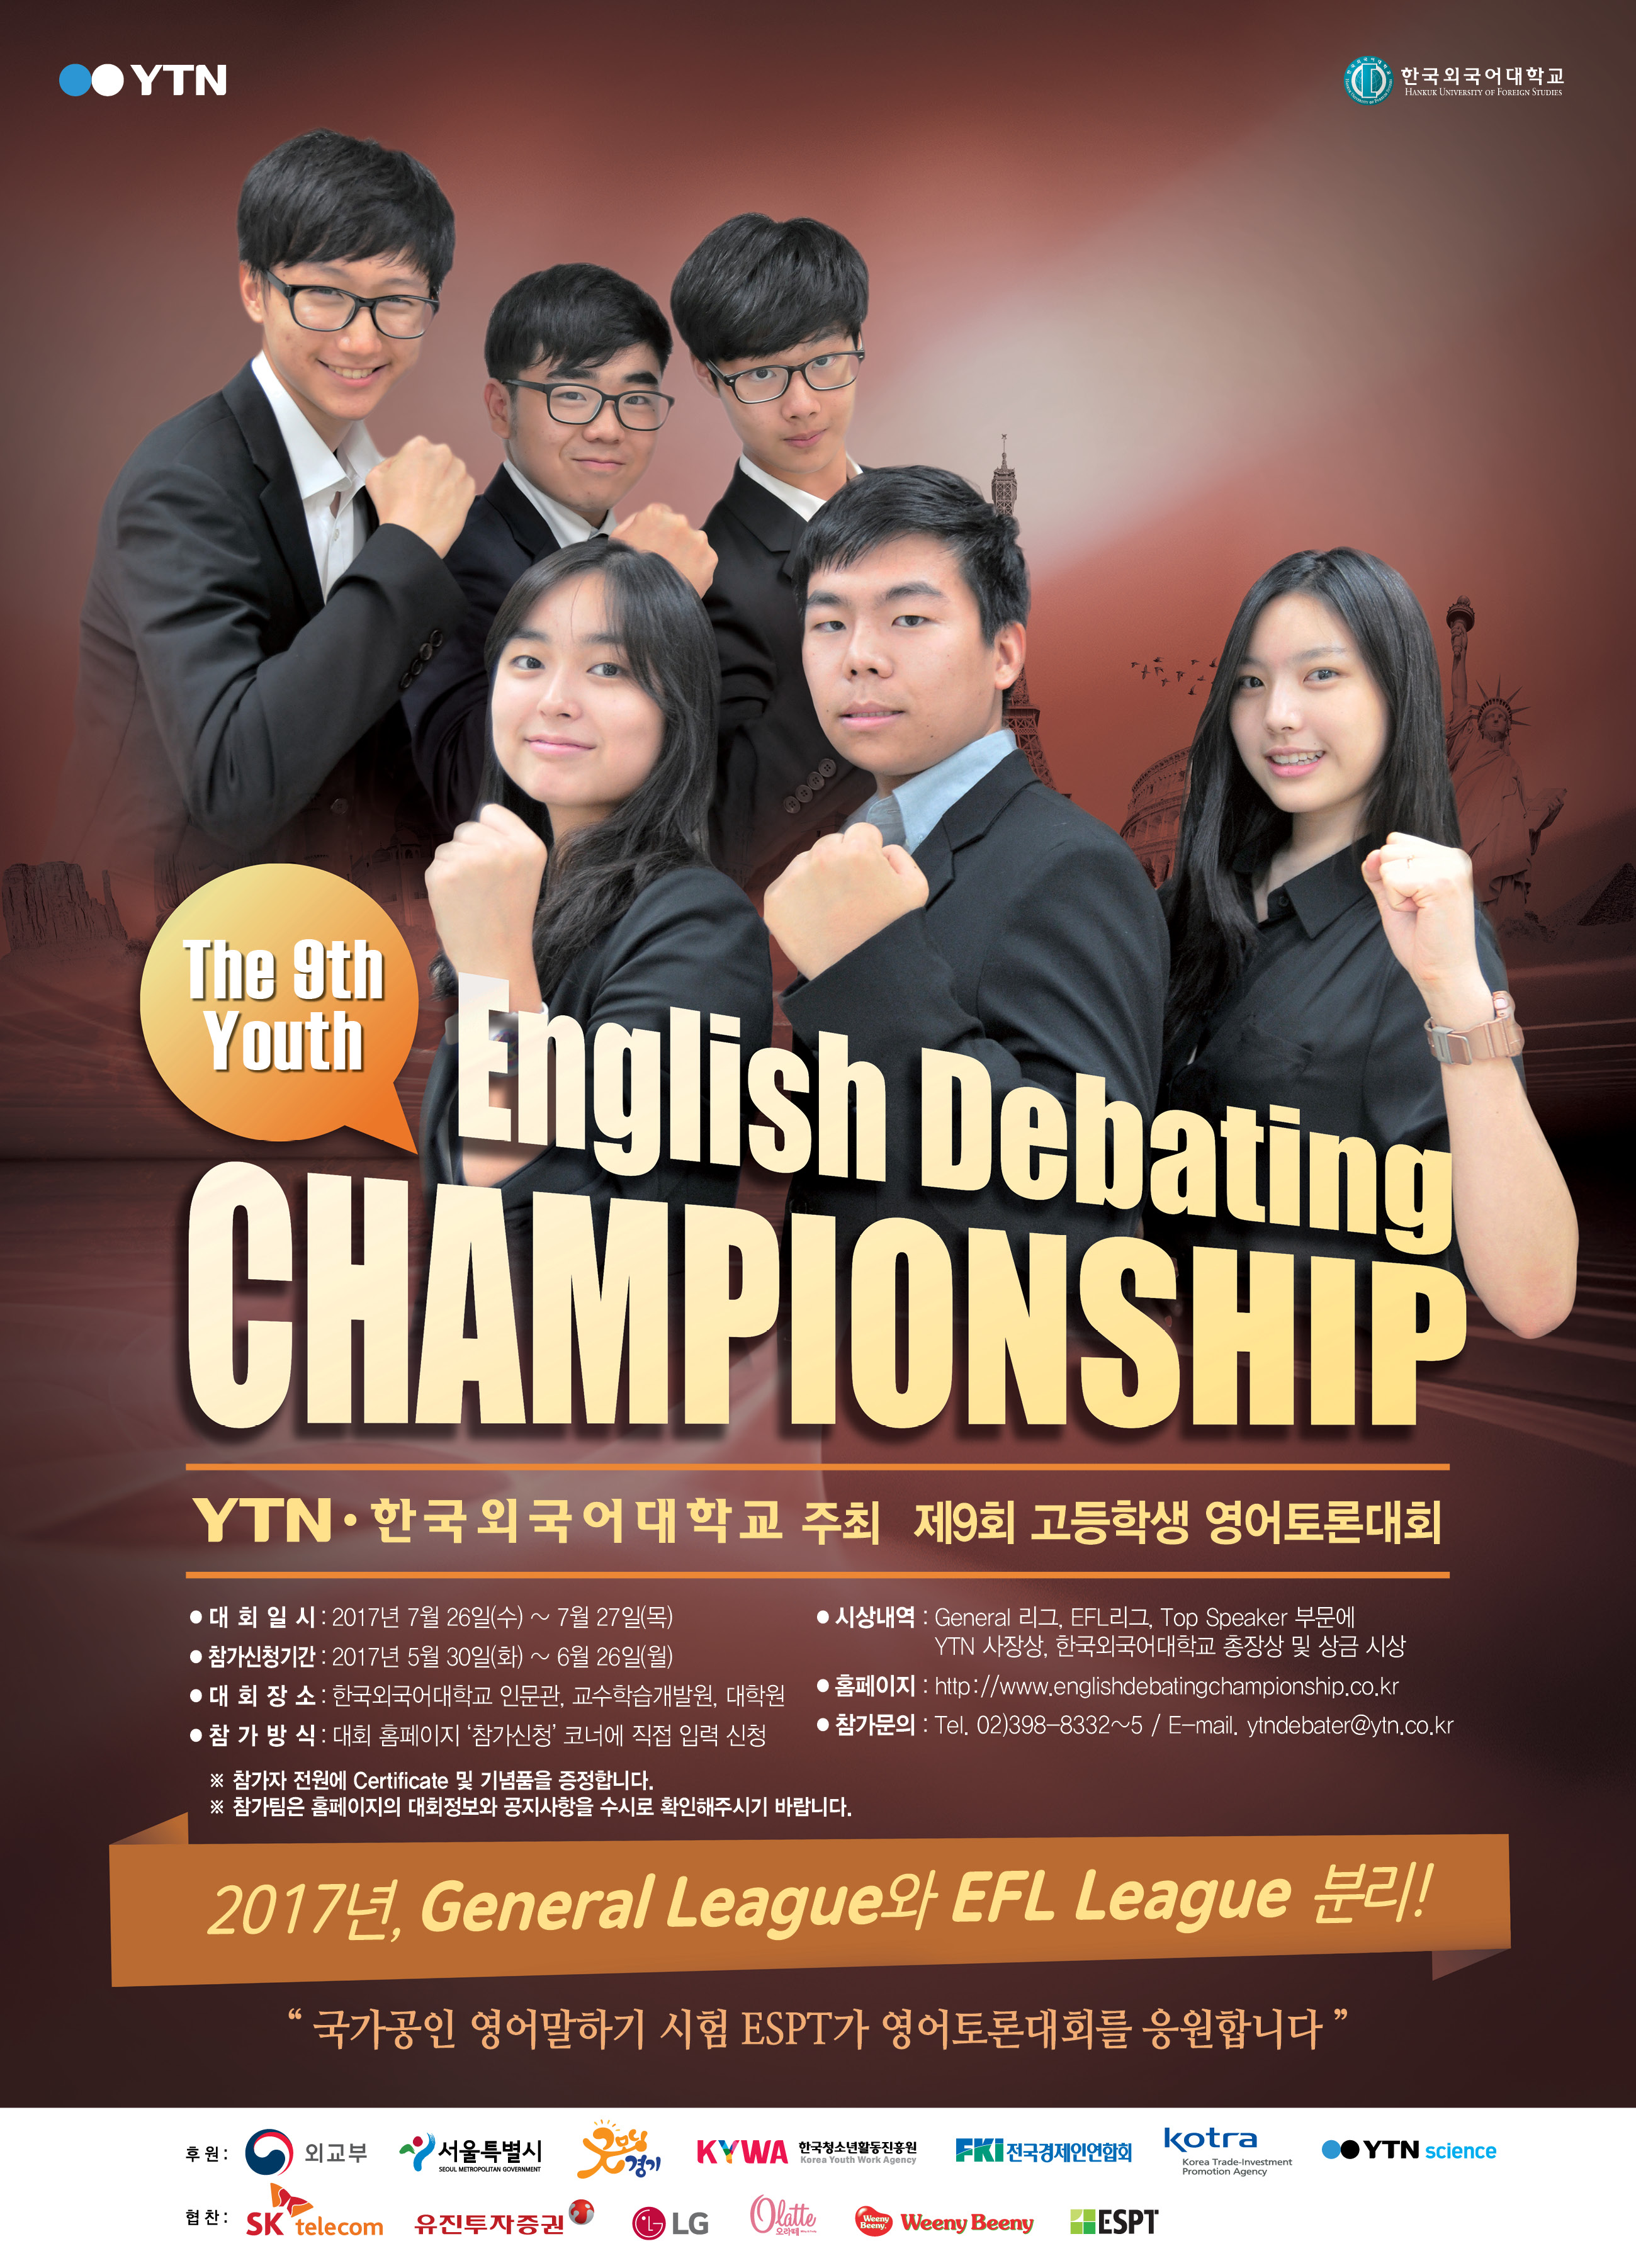 The 9th Youth English Debating Championship 2017